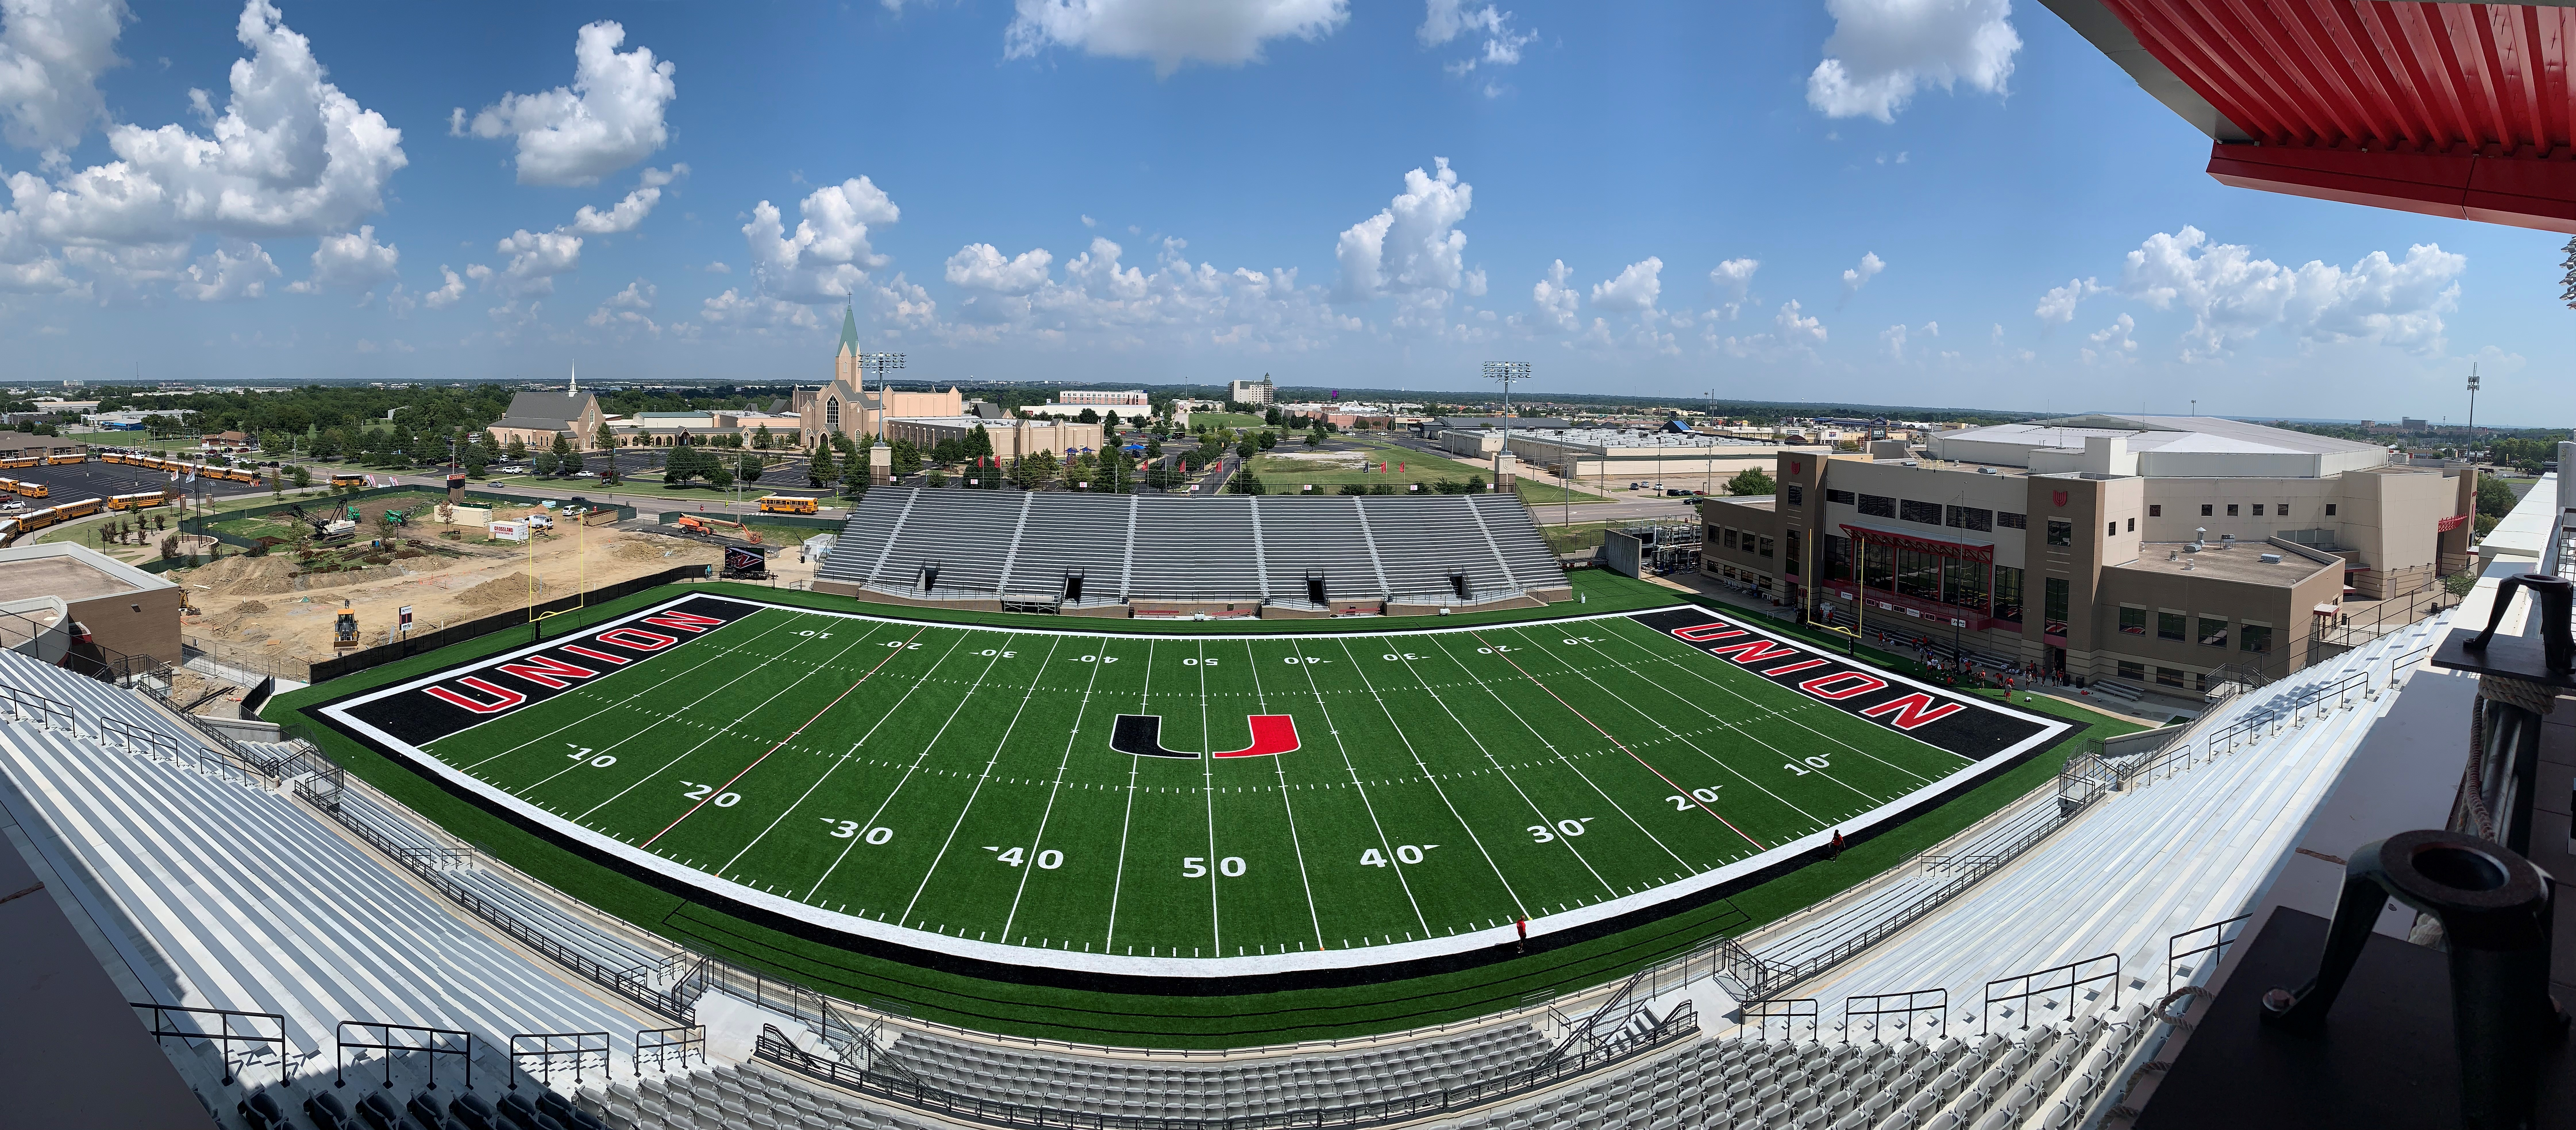 Panoramic view of the new Union stadium/ Photo by David Cobb, Client Development Manager at Terracon